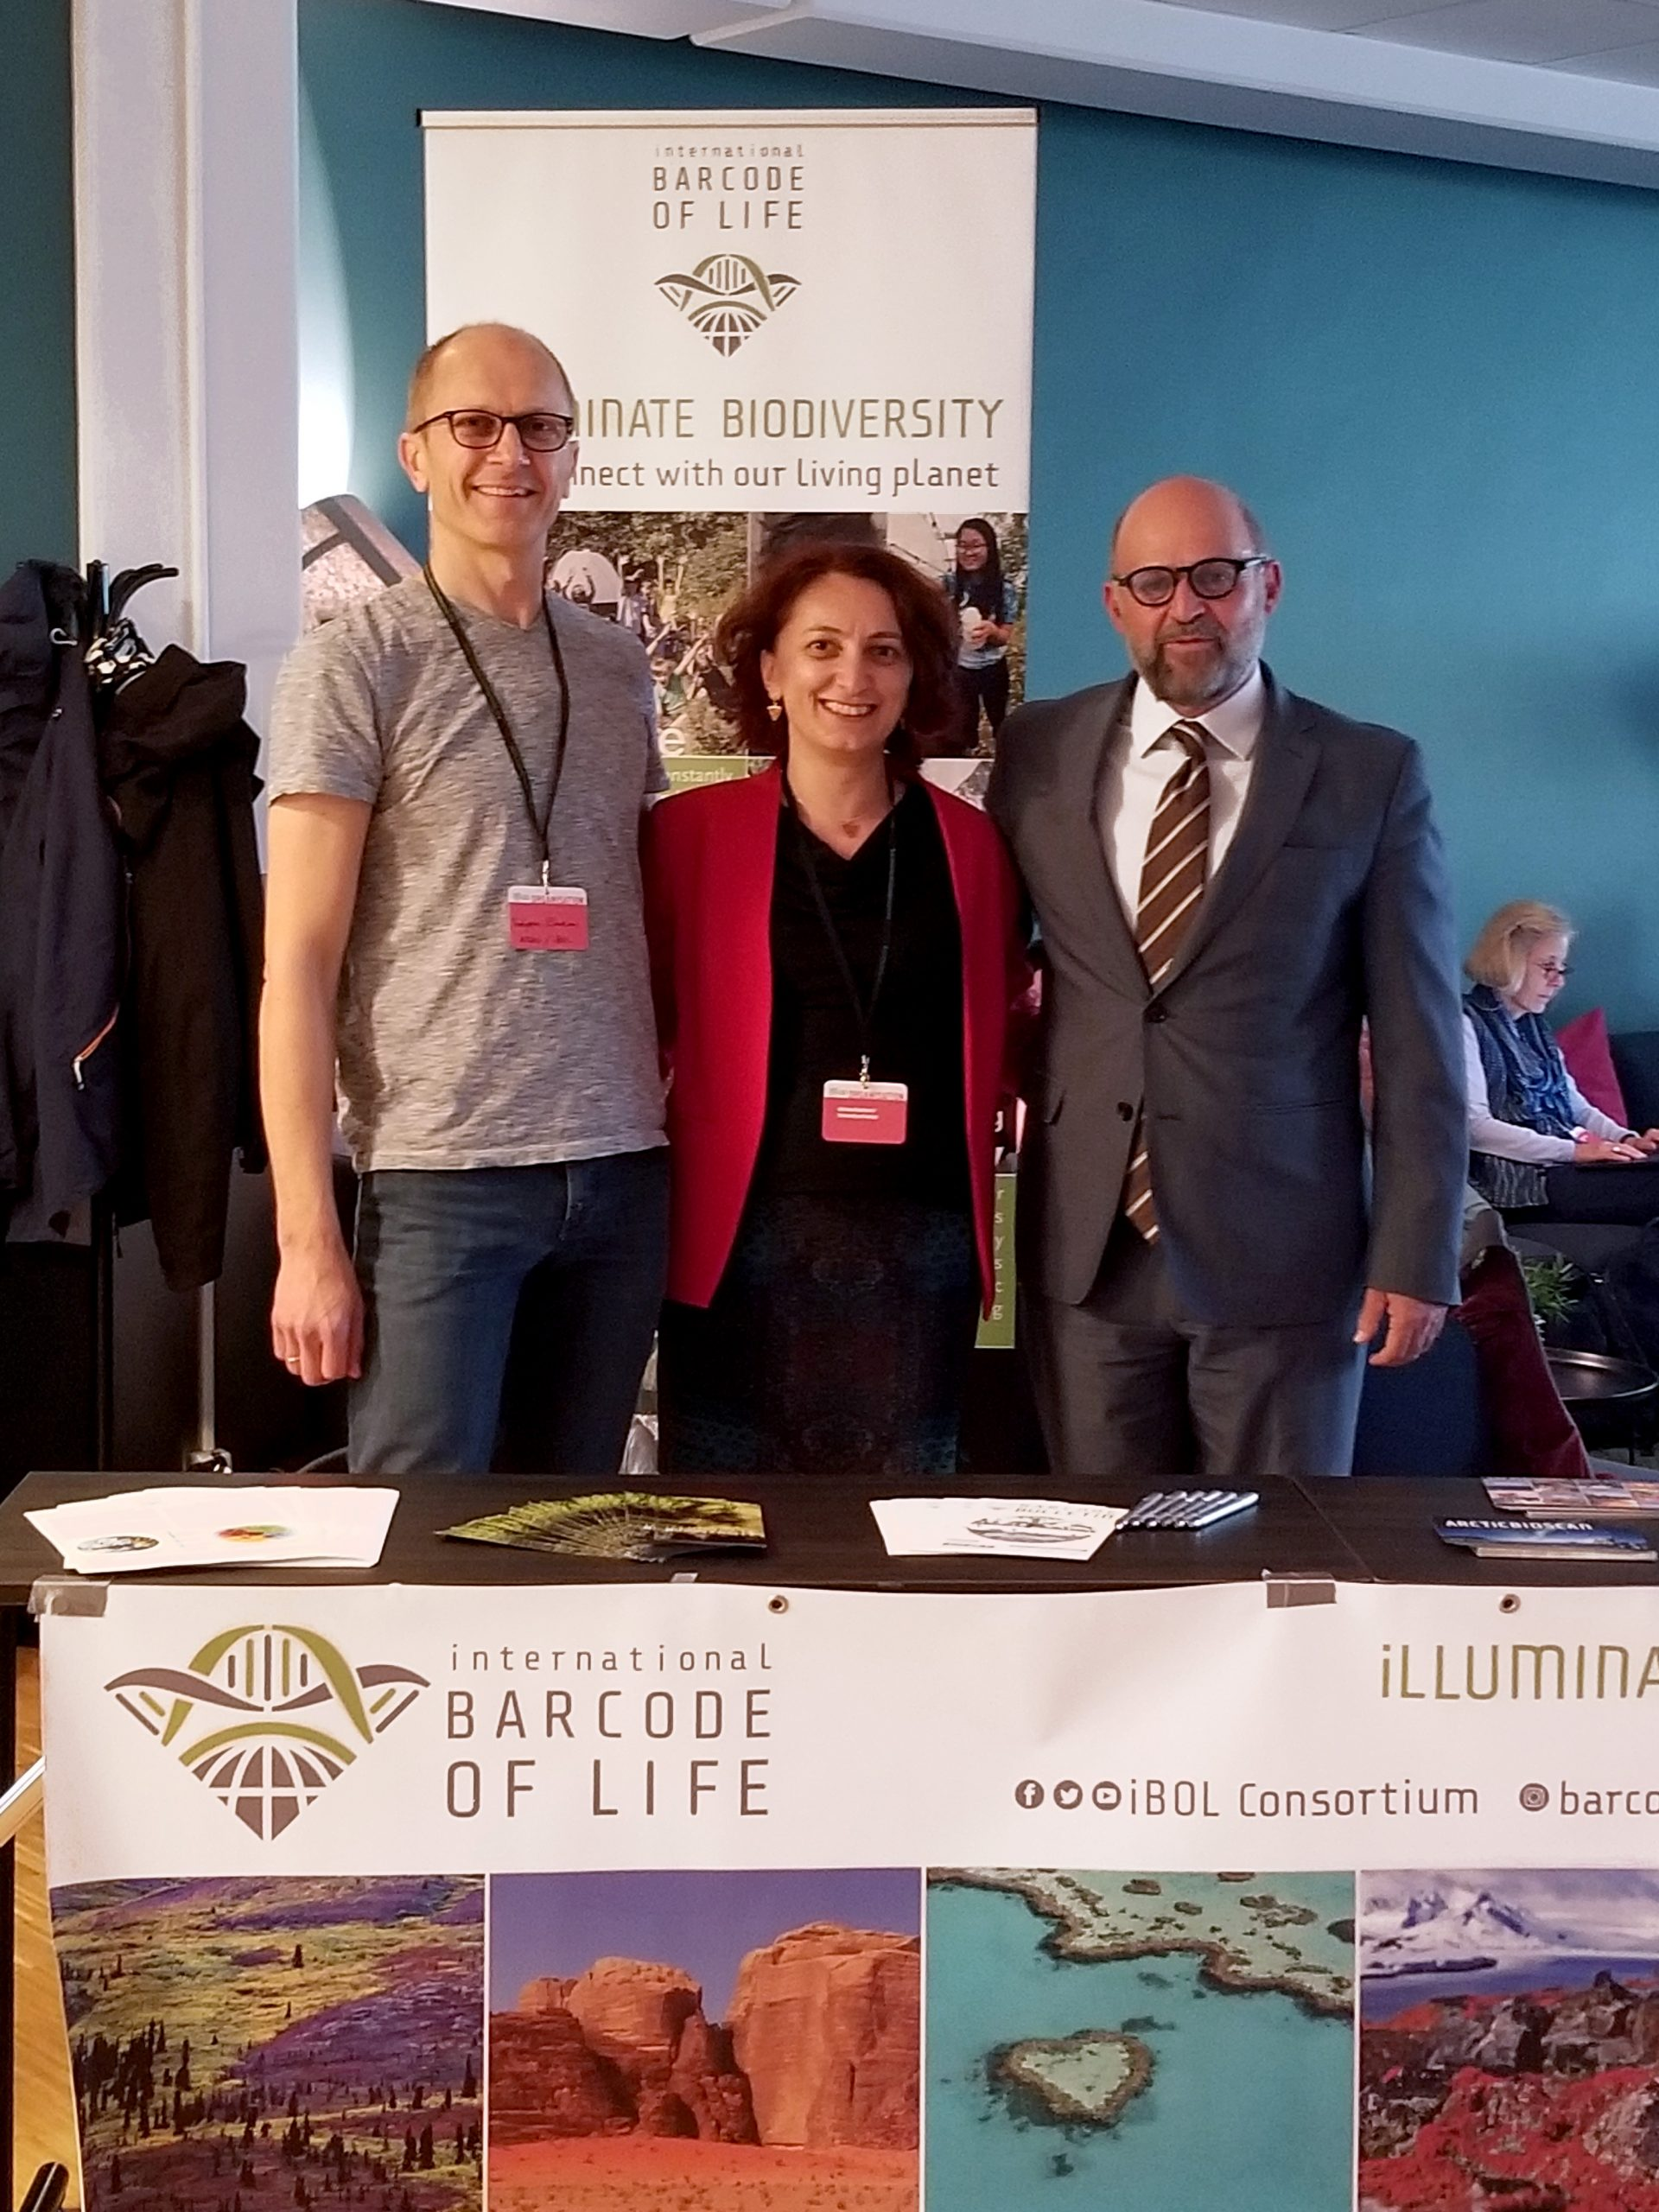 Carlos Manuel Rodríguez visiting the iBOL booth at the Trondheim Conference on Biodiversity (July, 2019). With Torbjørn Ekrem (Norwegian Barcode of Life coordinator) and Adriana Radulovici (Centre for Biodiversity Genomics, Canada).